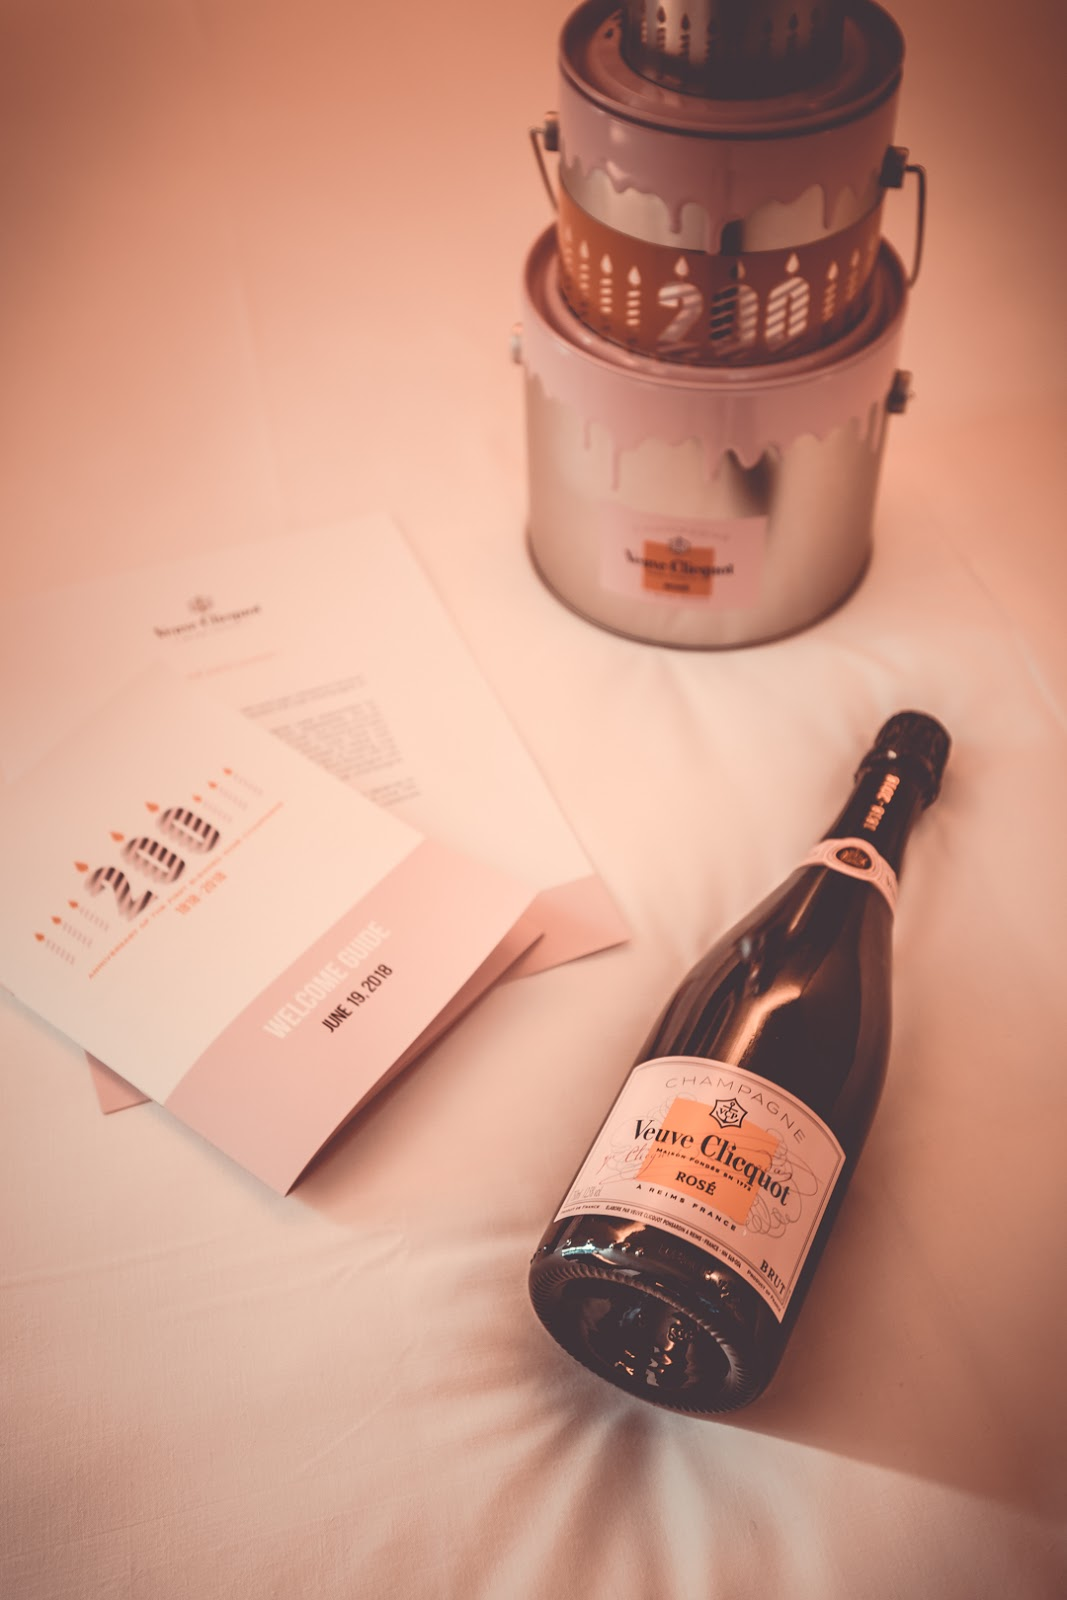 paris veuve clicquot rose 200 birthday party